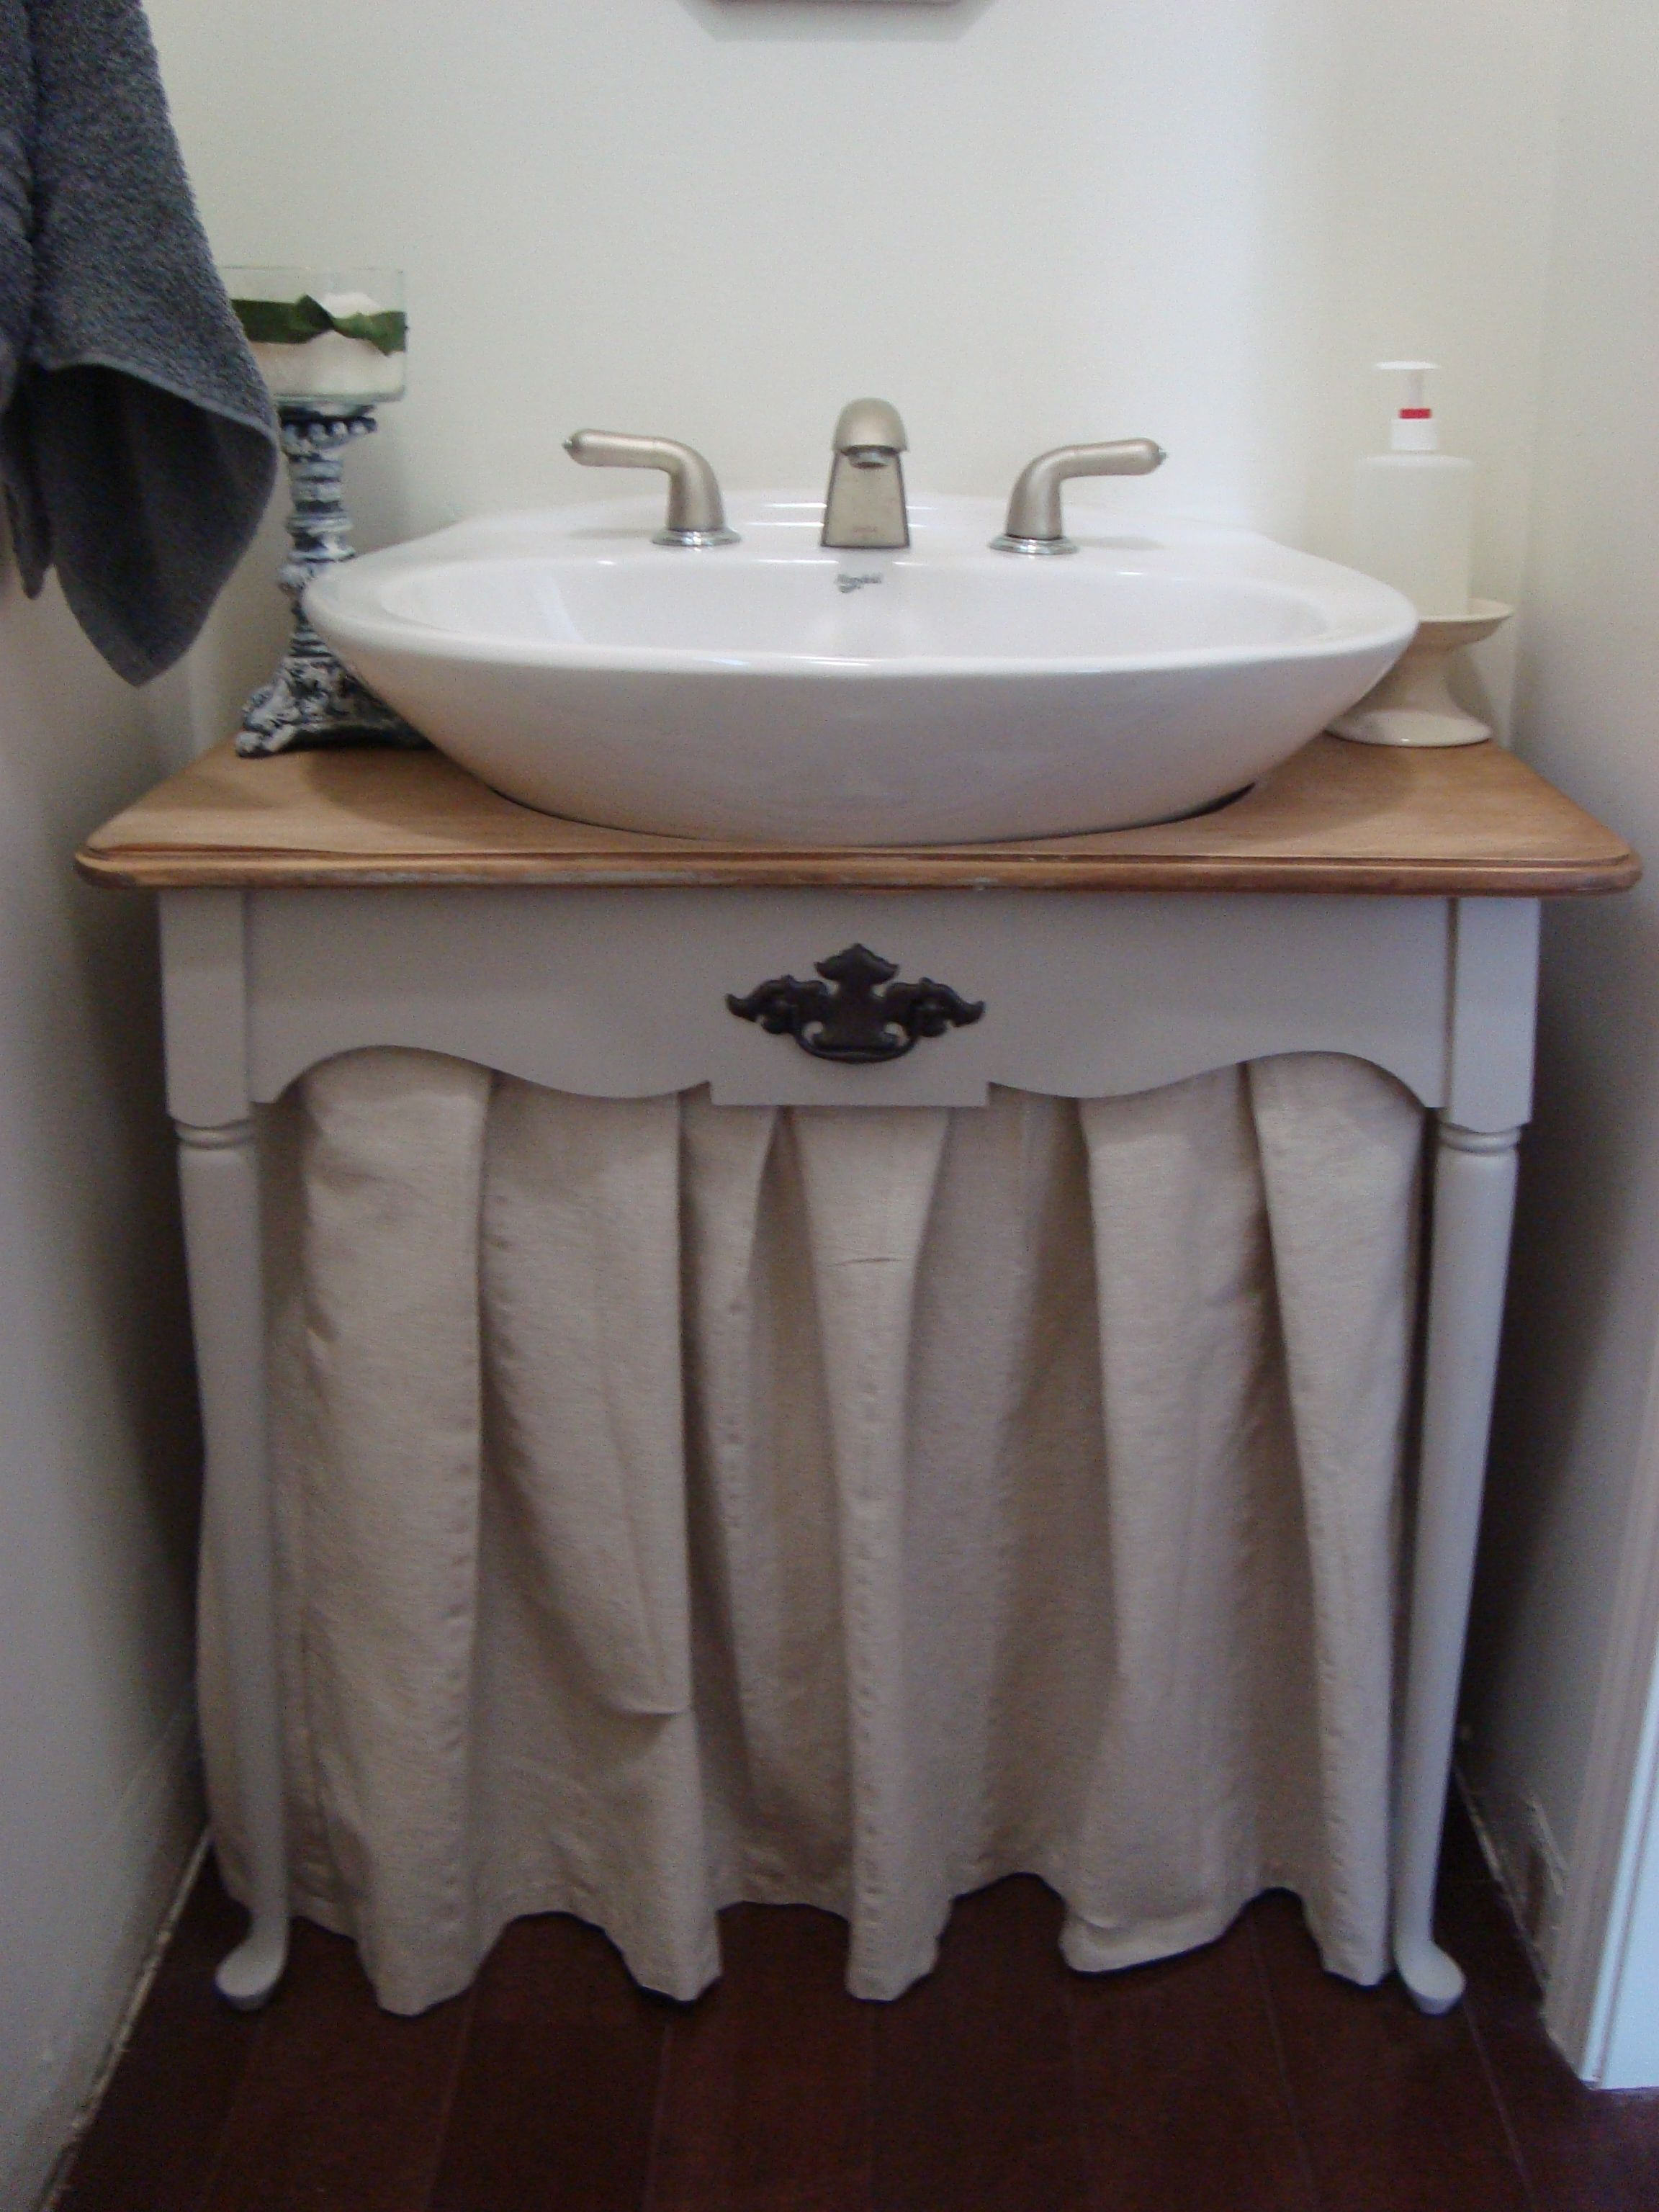 Knew It Could Be Done This Is A Pedestal Sink Don T Like The